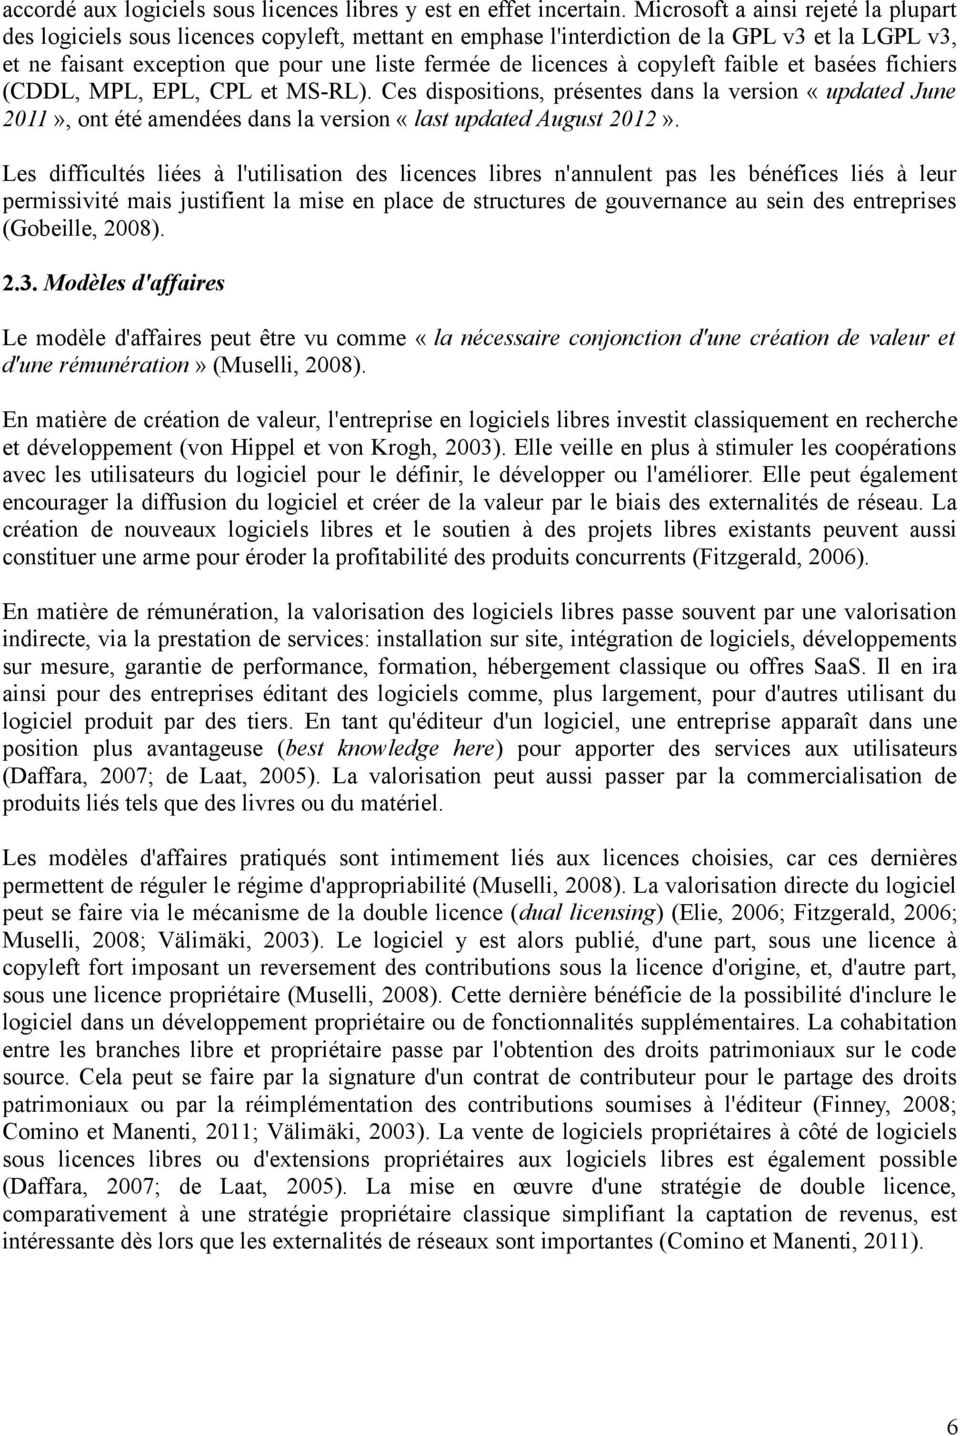 copyleft faible et basées fichiers (CDDL, MPL, EPL, CPL et MS-RL). Ces dispositions, présentes dans la version «updated June 2011», ont été amendées dans la version «last updated August 2012».